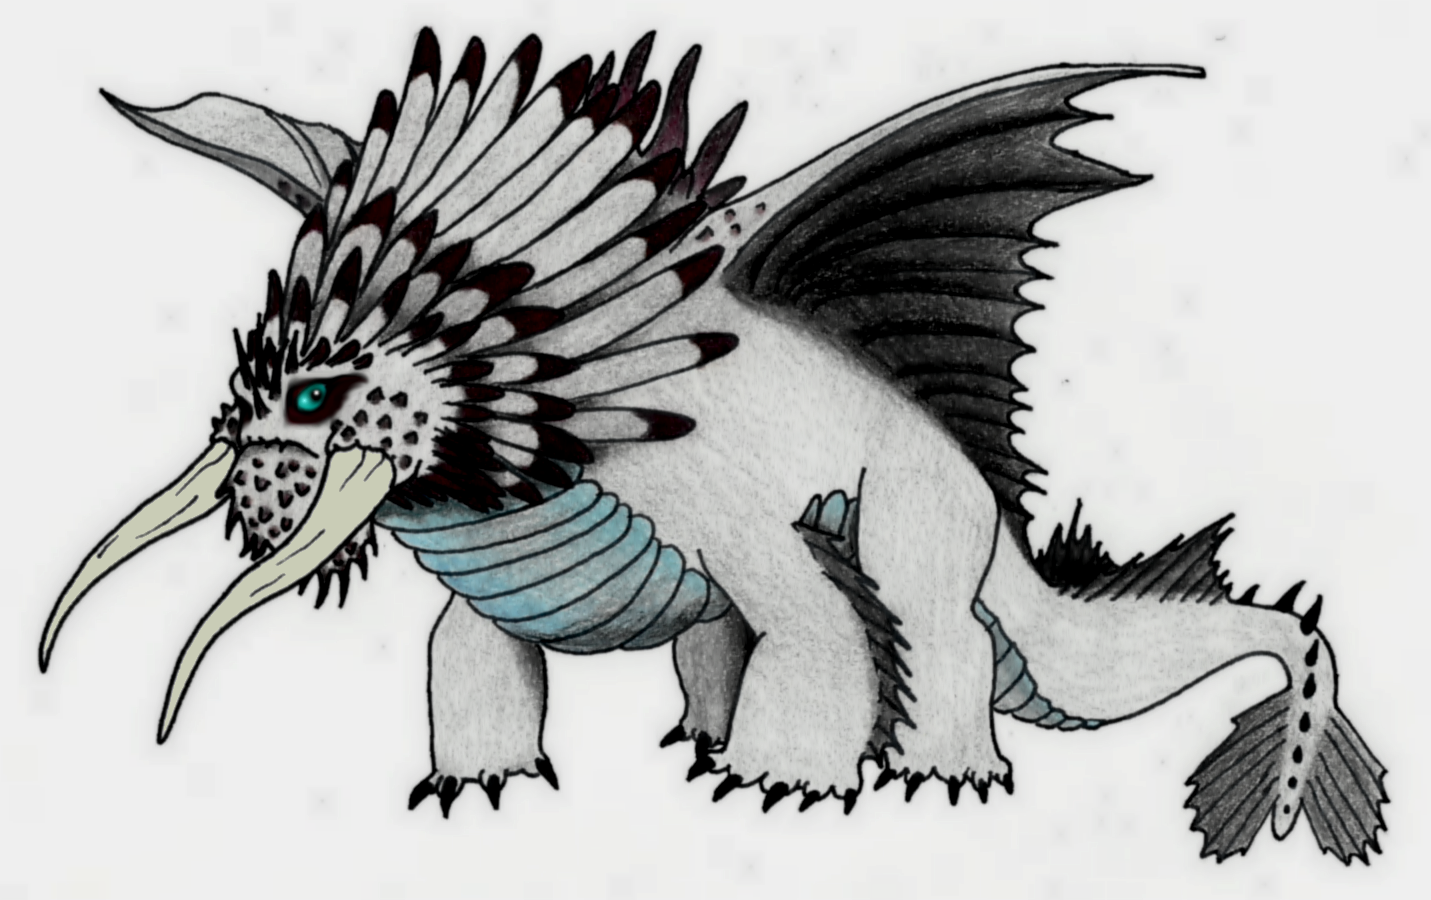 Coloring Pages How To Train Your Dragon : By alexaanime1 on deviantart